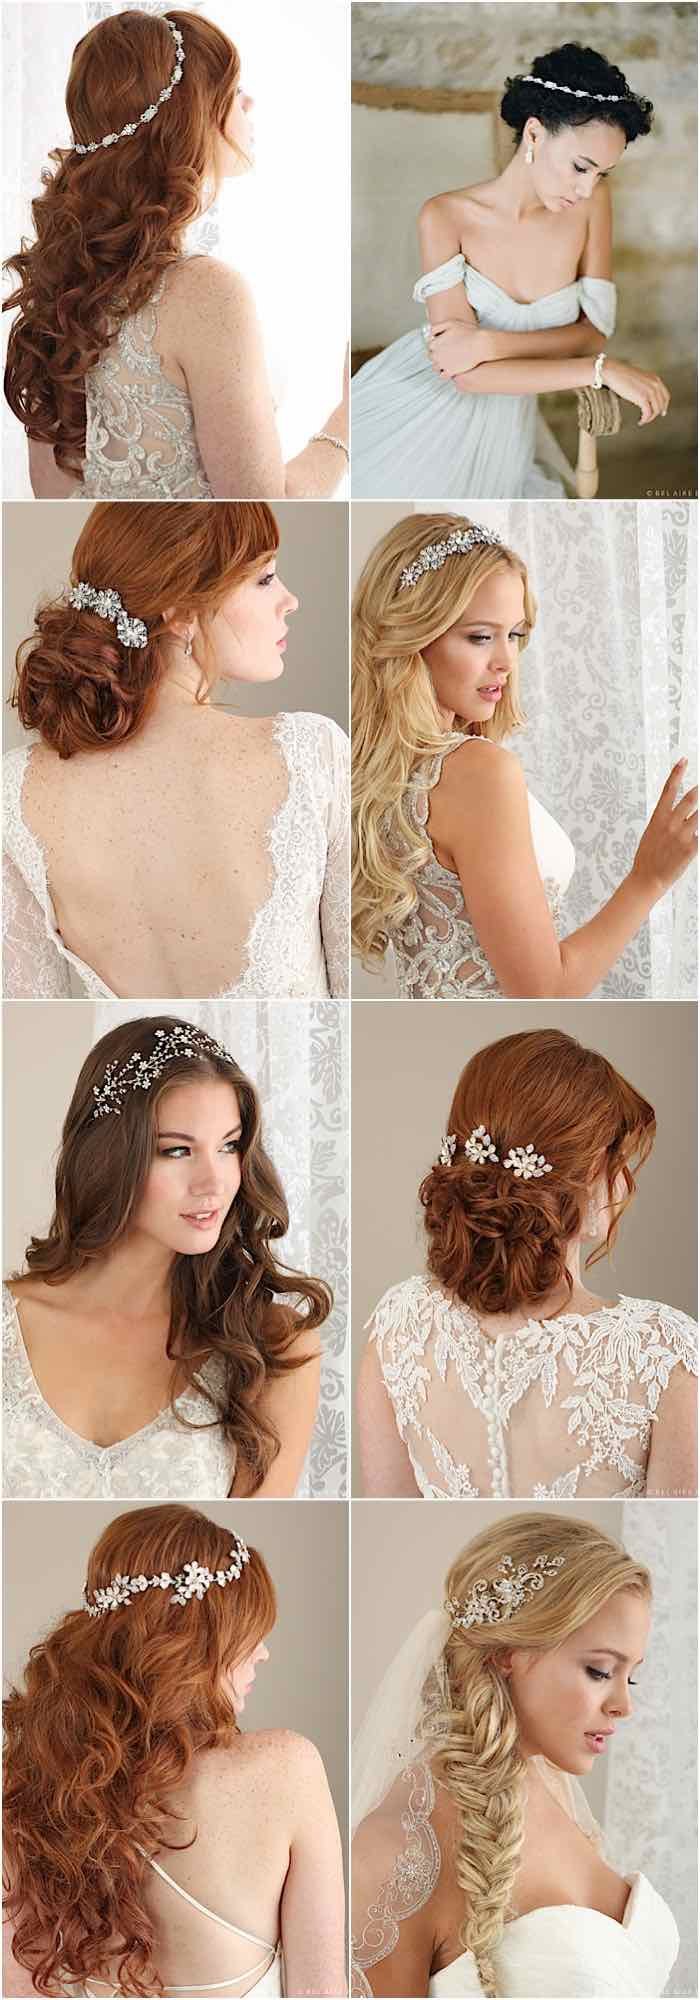 wedding-hairstyles-collage